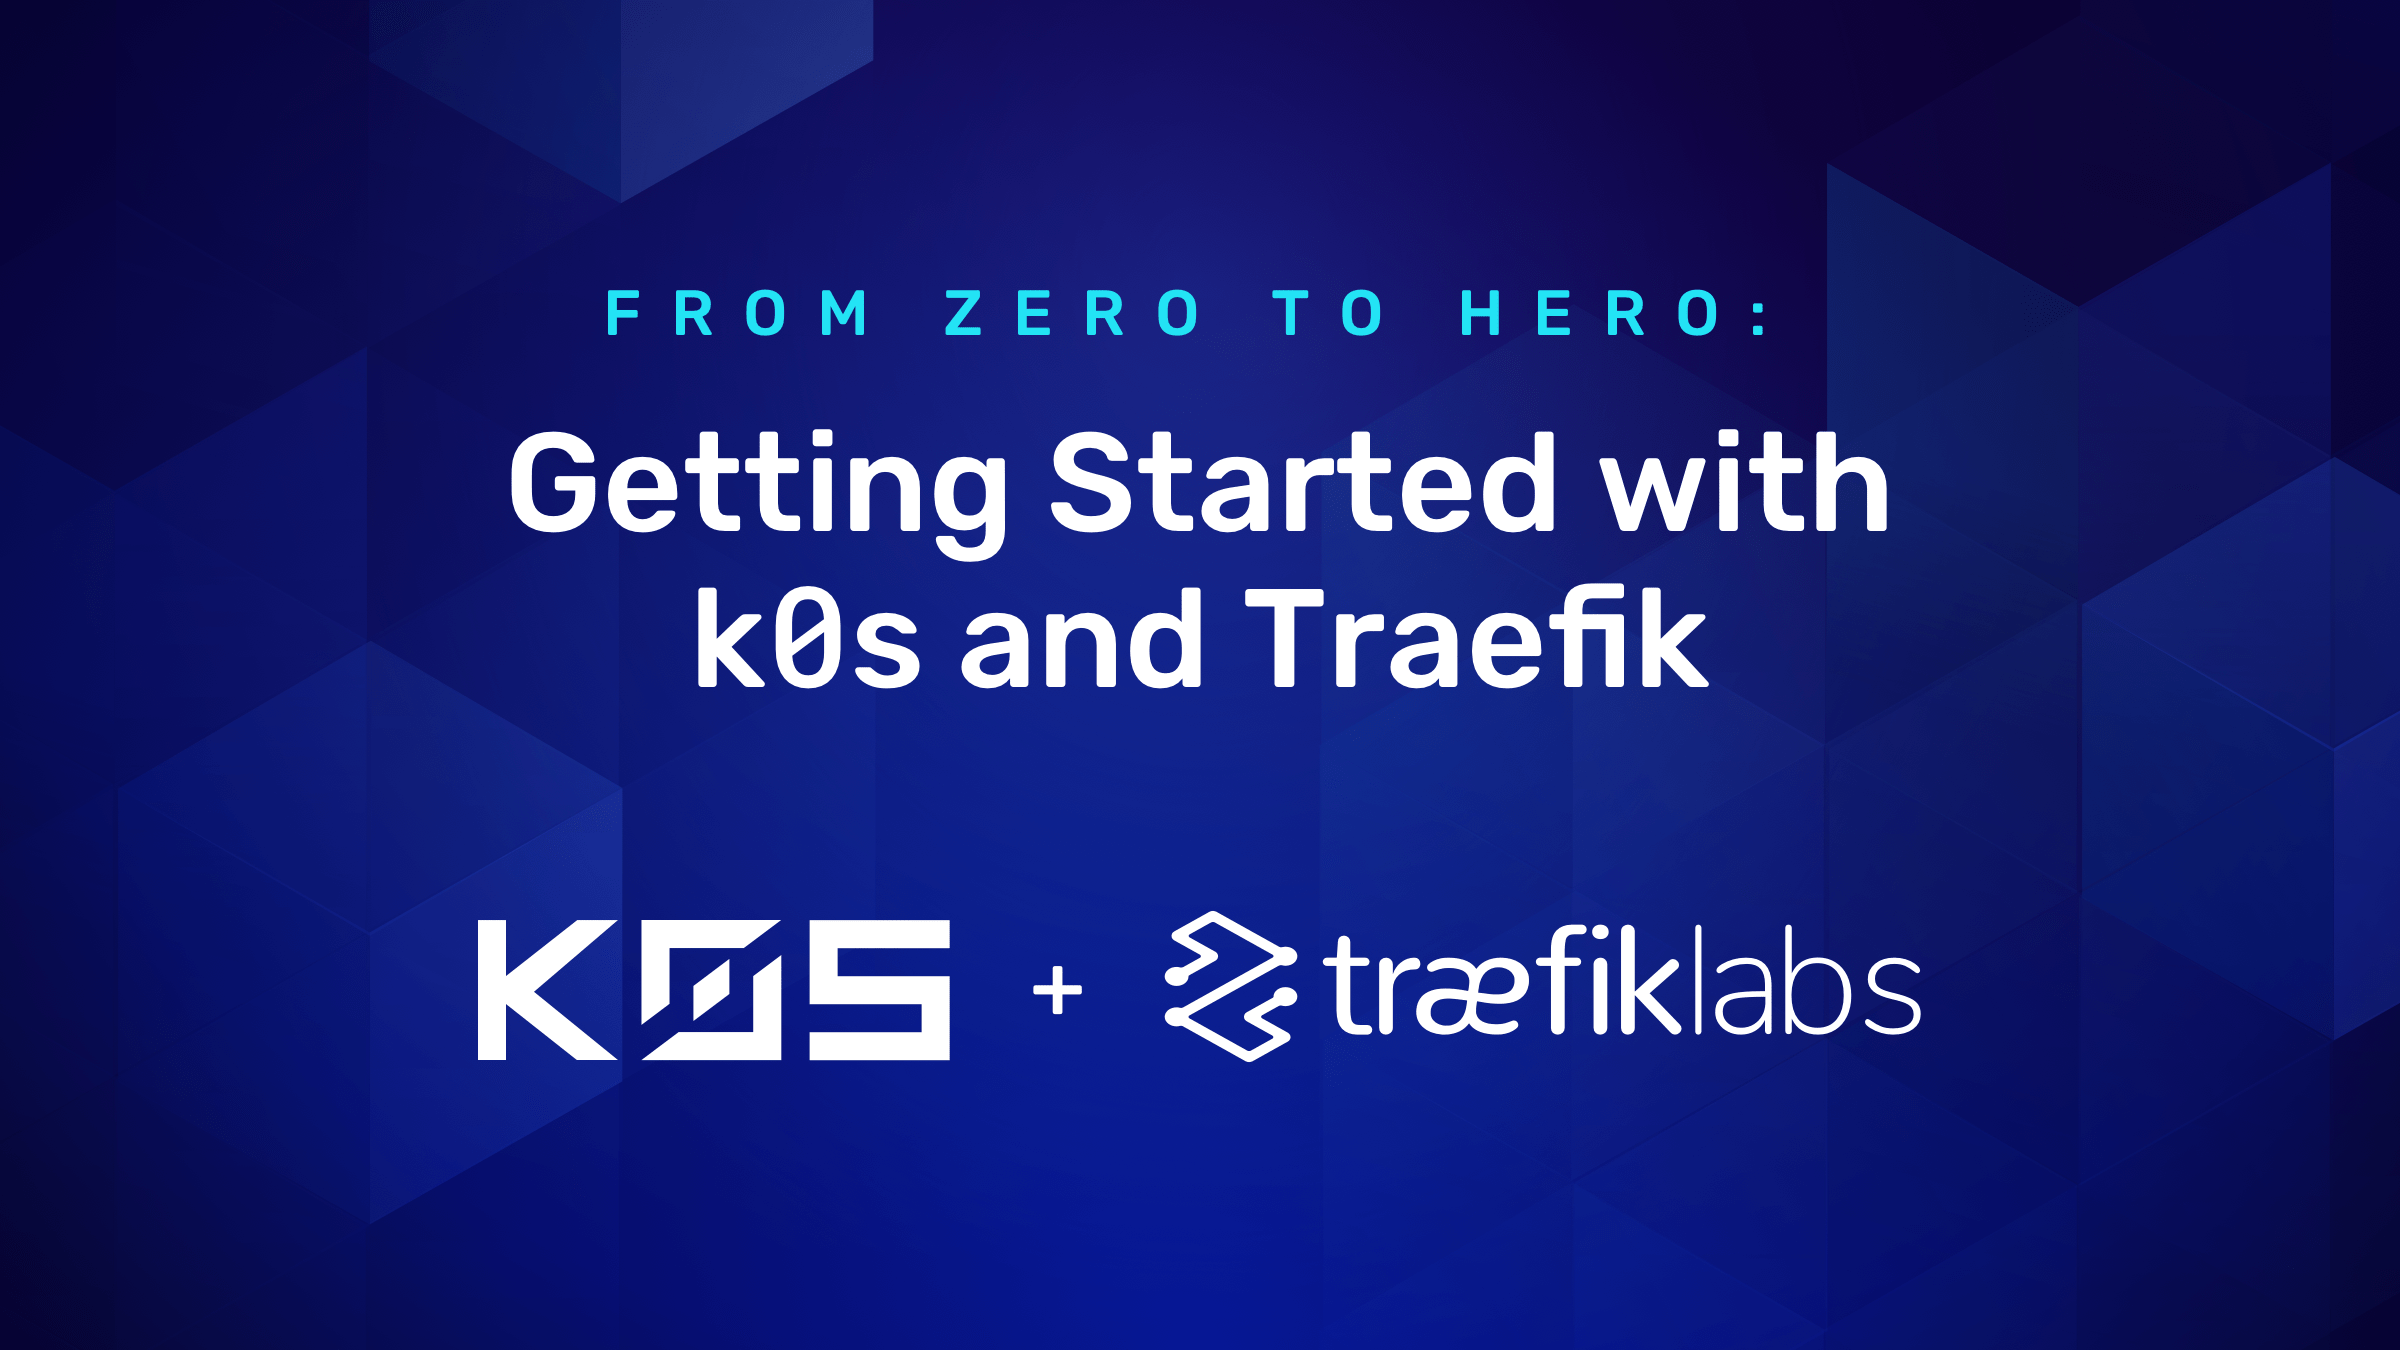 Getting Started with k0s and Traefik